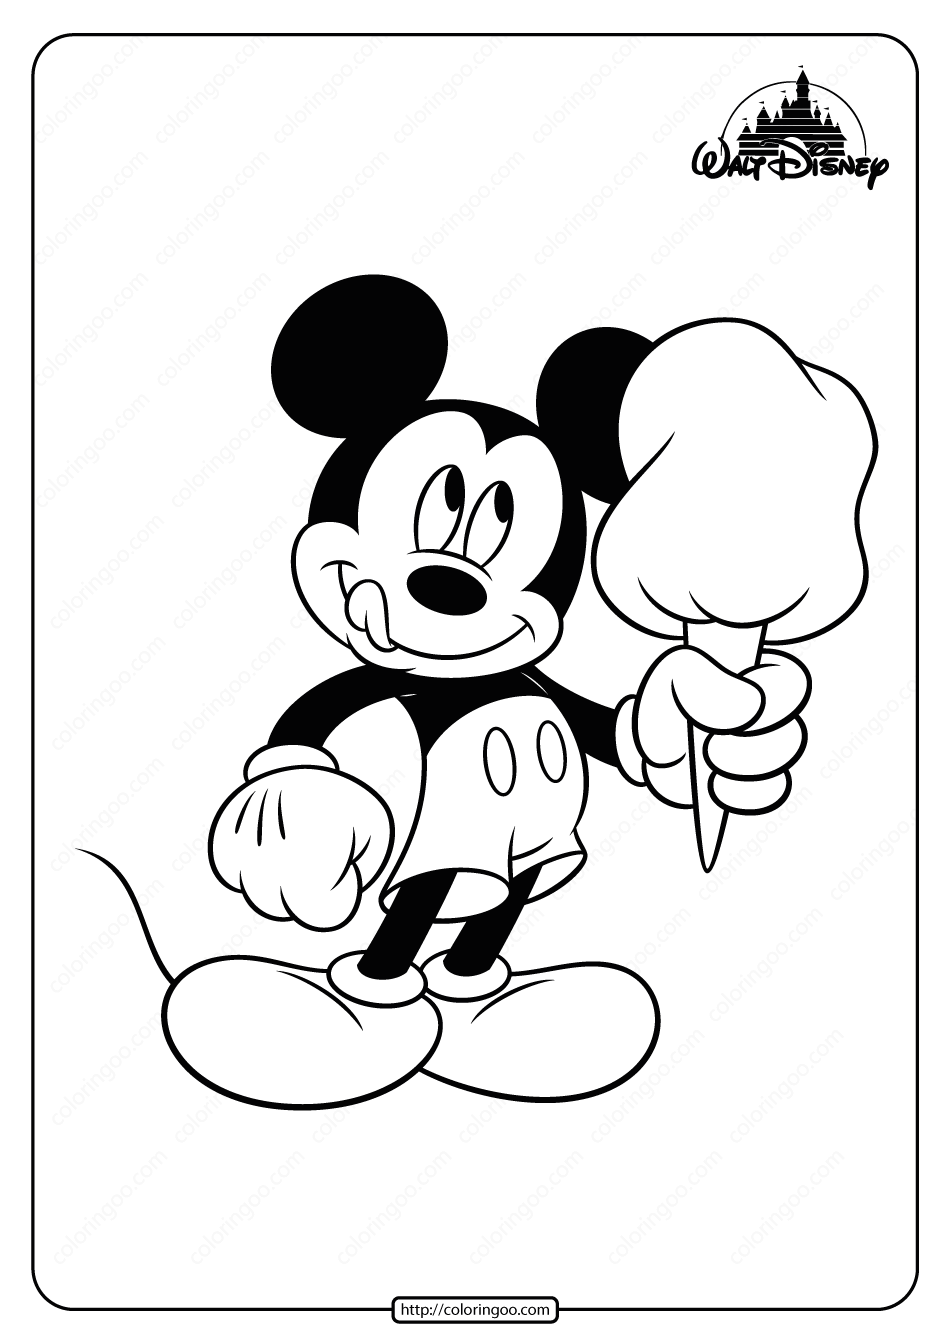 Printable Mickey Mouse Cotton Candy Coloring Page Disney Coloring Pages Candy Coloring Pages Minnie Mouse Coloring Pages